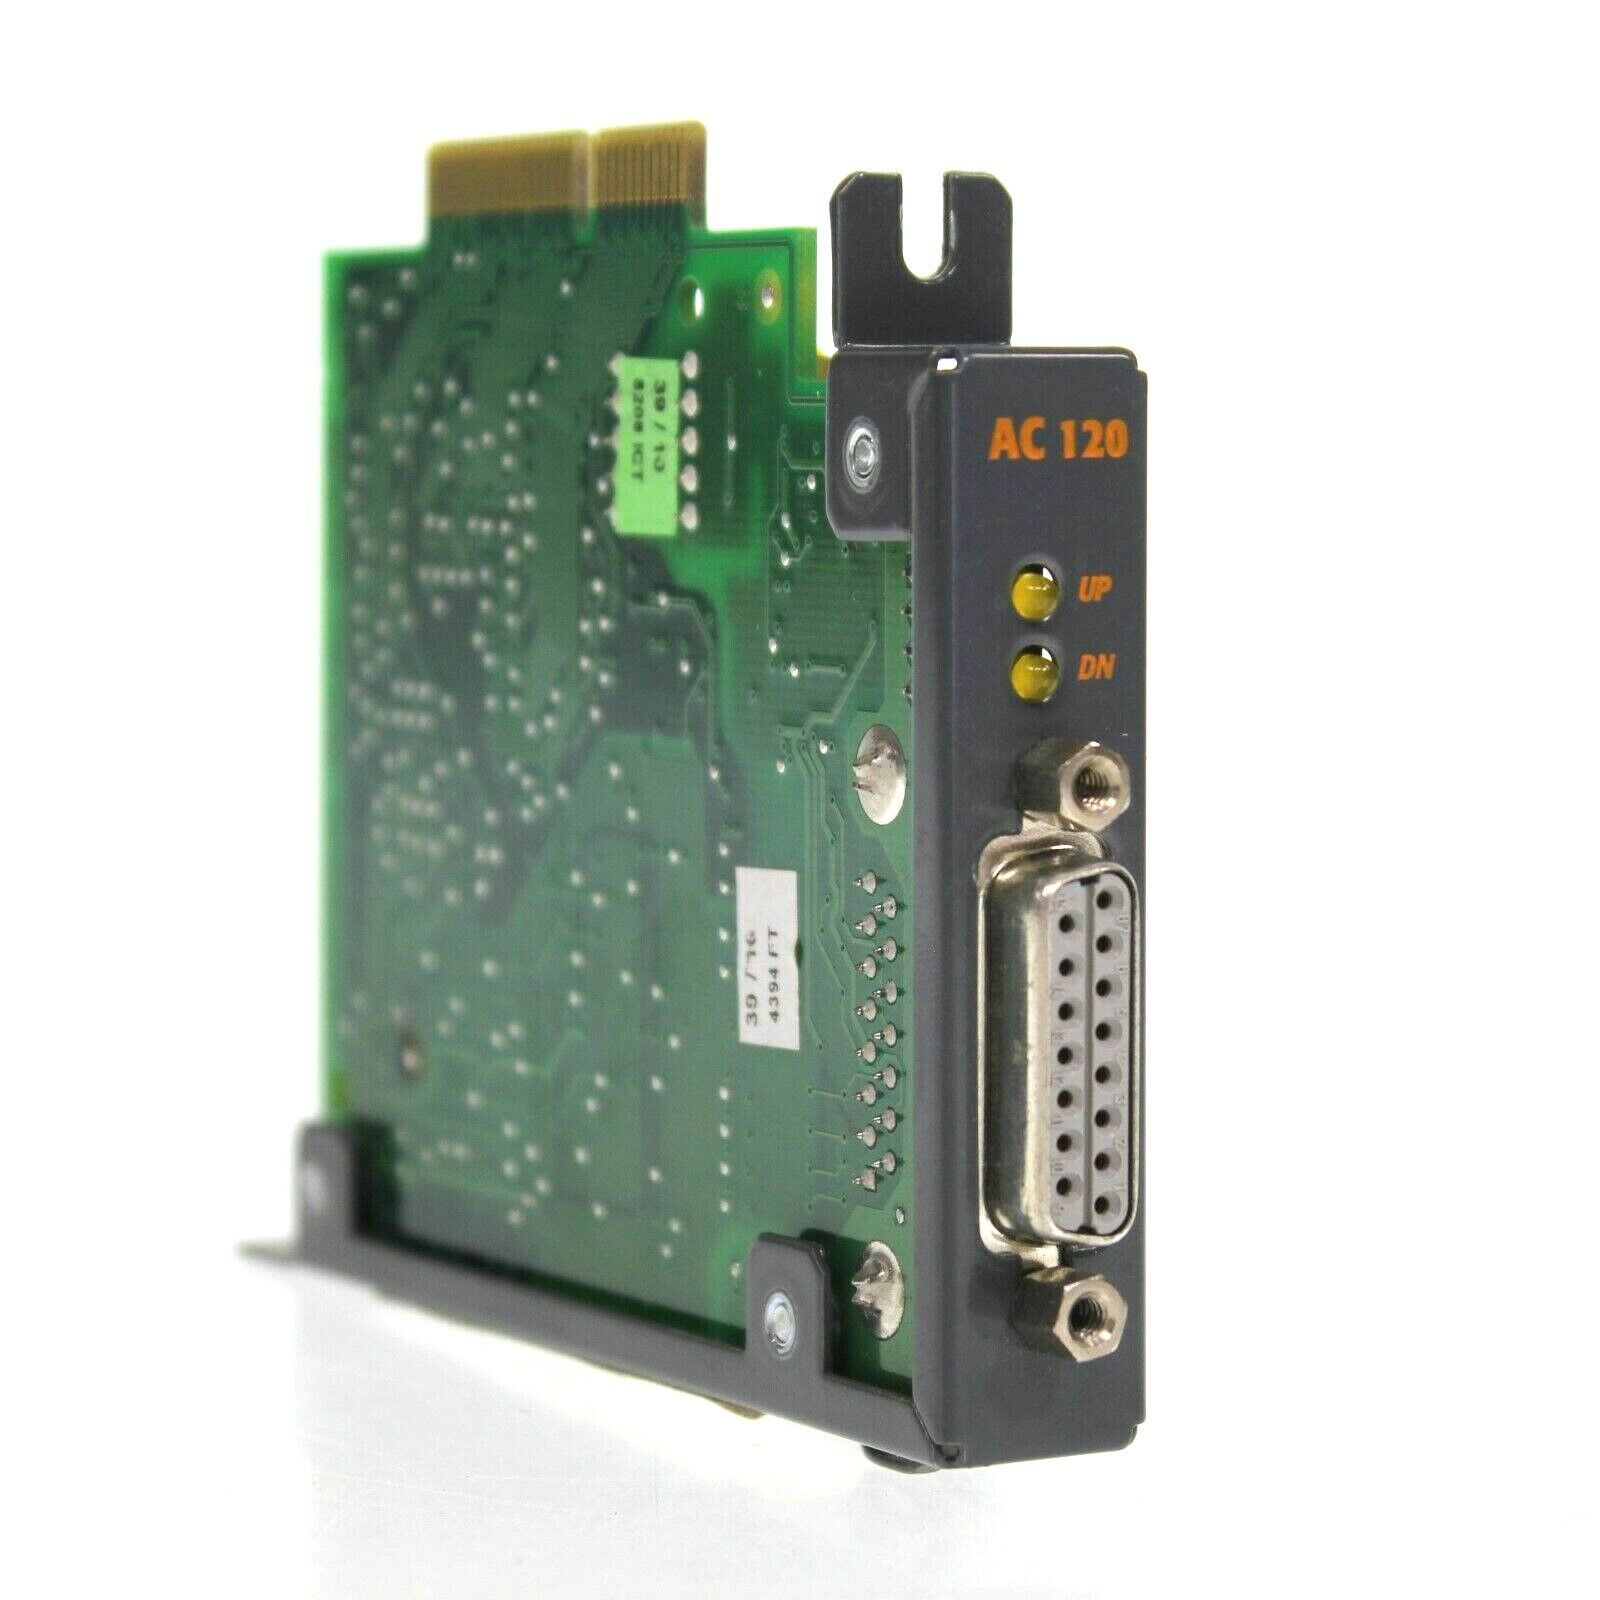 B&R Automation 8AC120.60-1 AC 120 ENDAT Encoder Interface For ACOPOS Drive